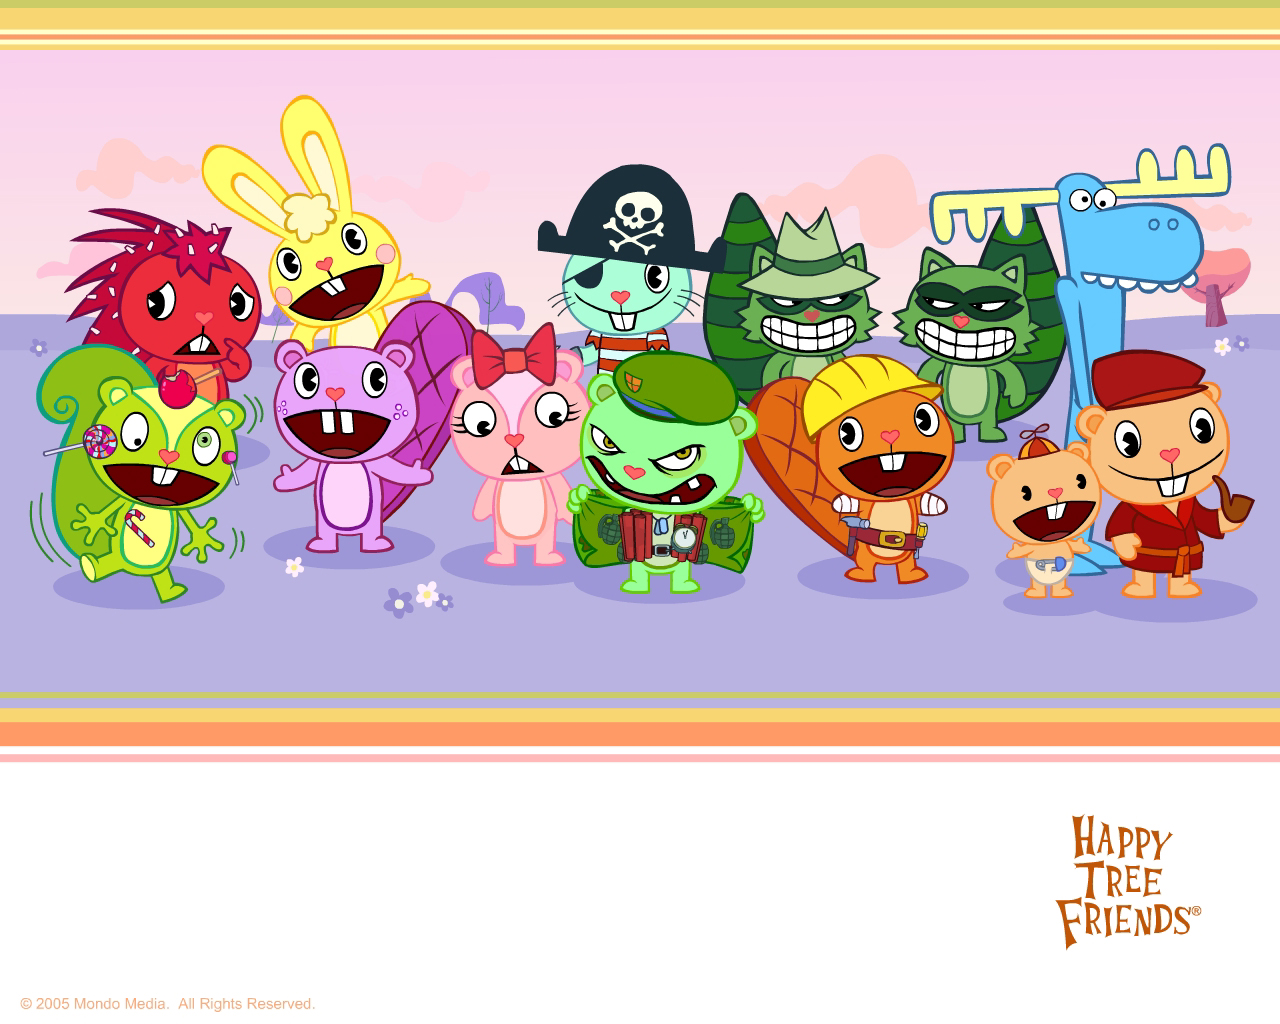 hapyy tree friends